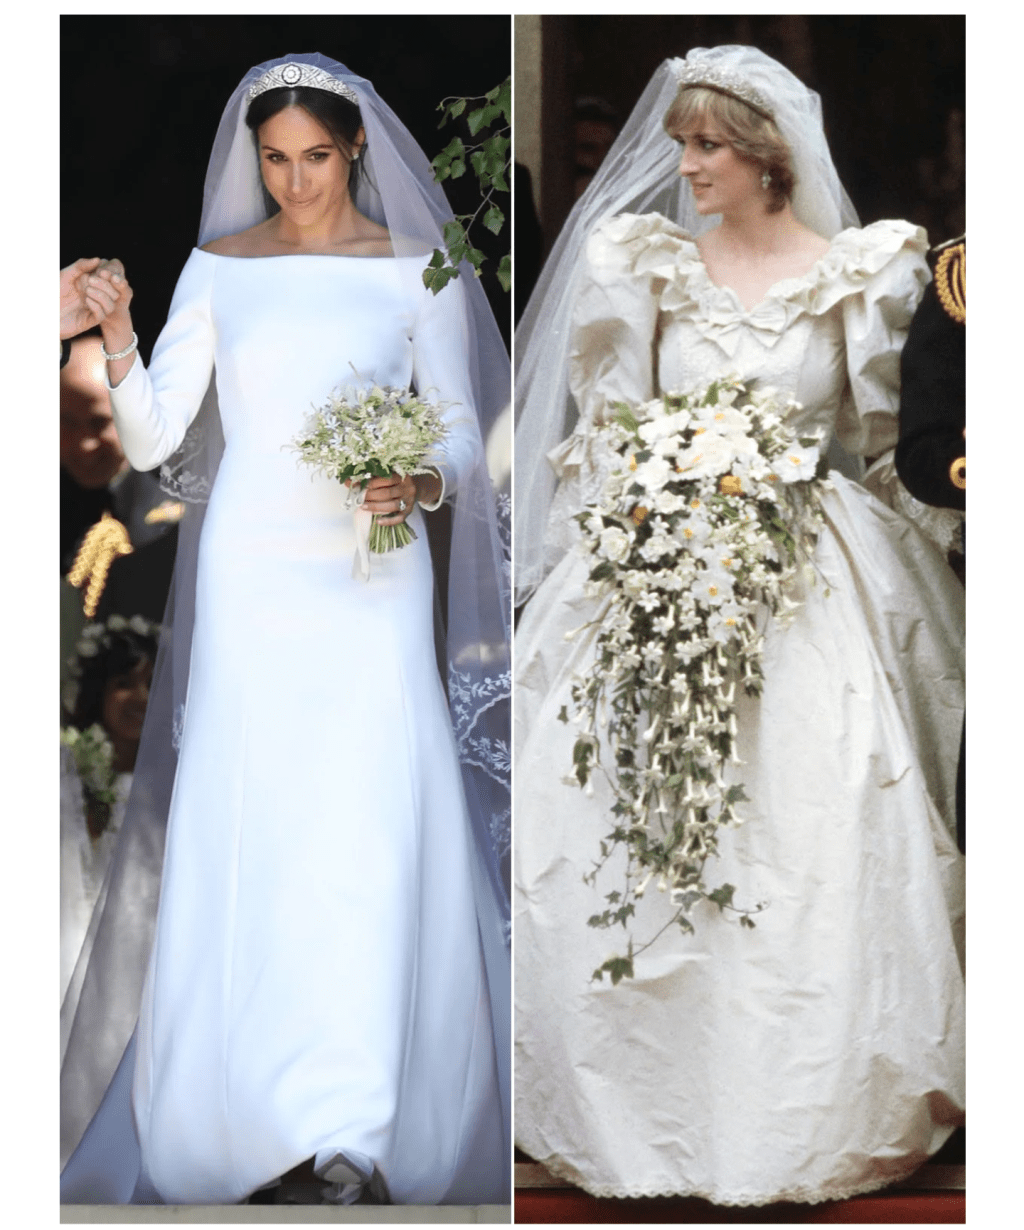 Meghan Markle as the Blanket Statement of a Non-racist Monarchy